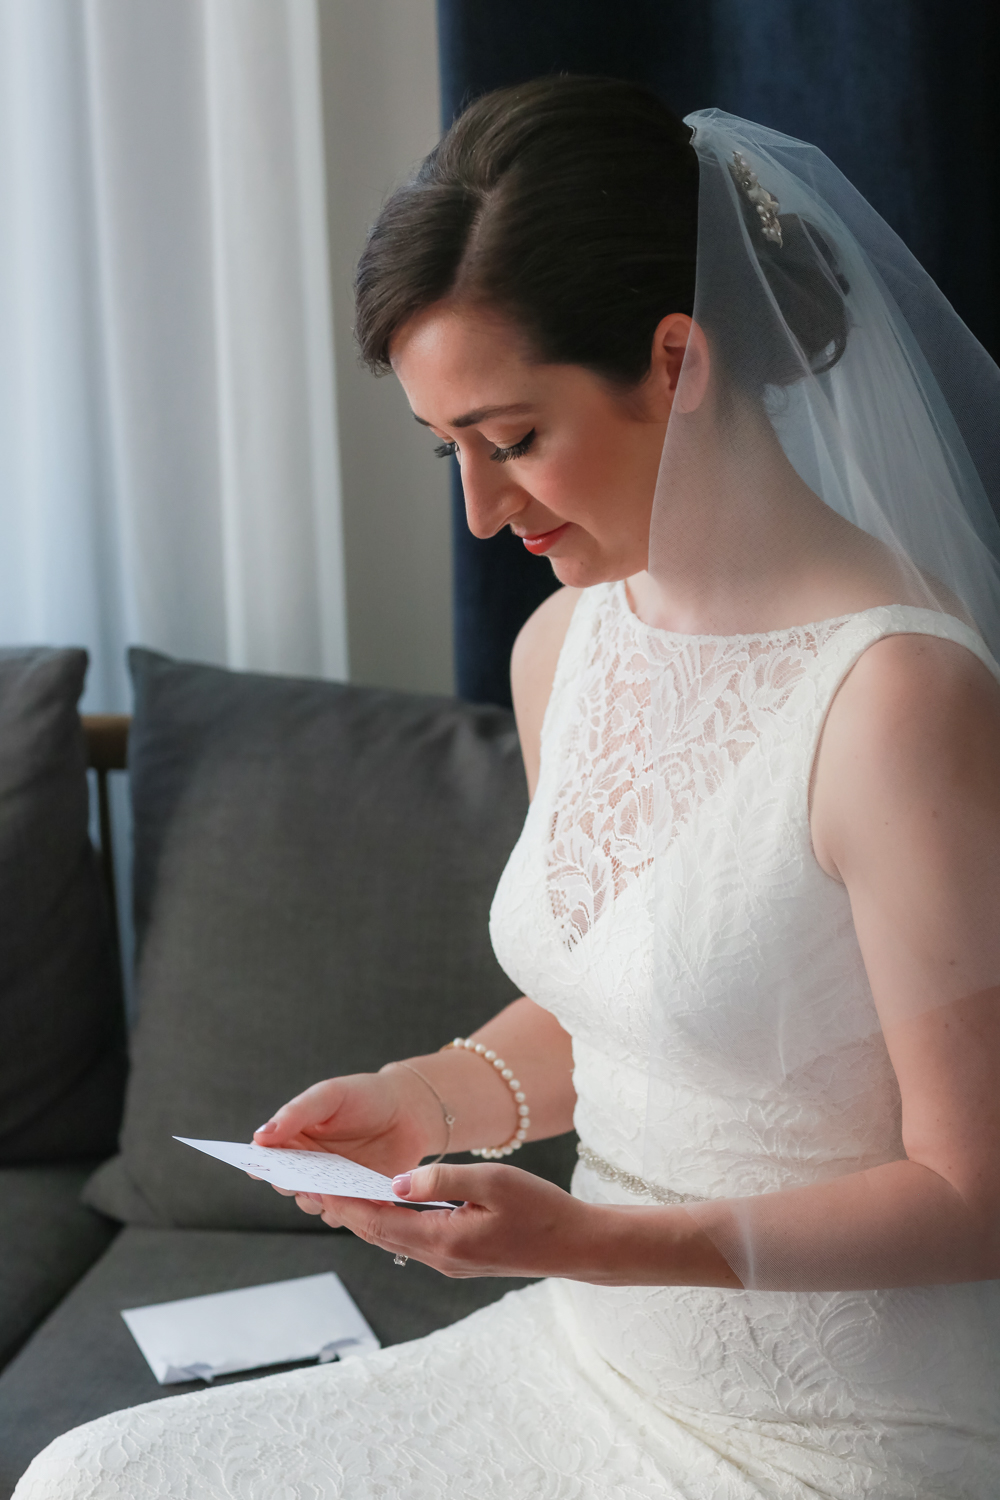 New York bride reads letter from groom